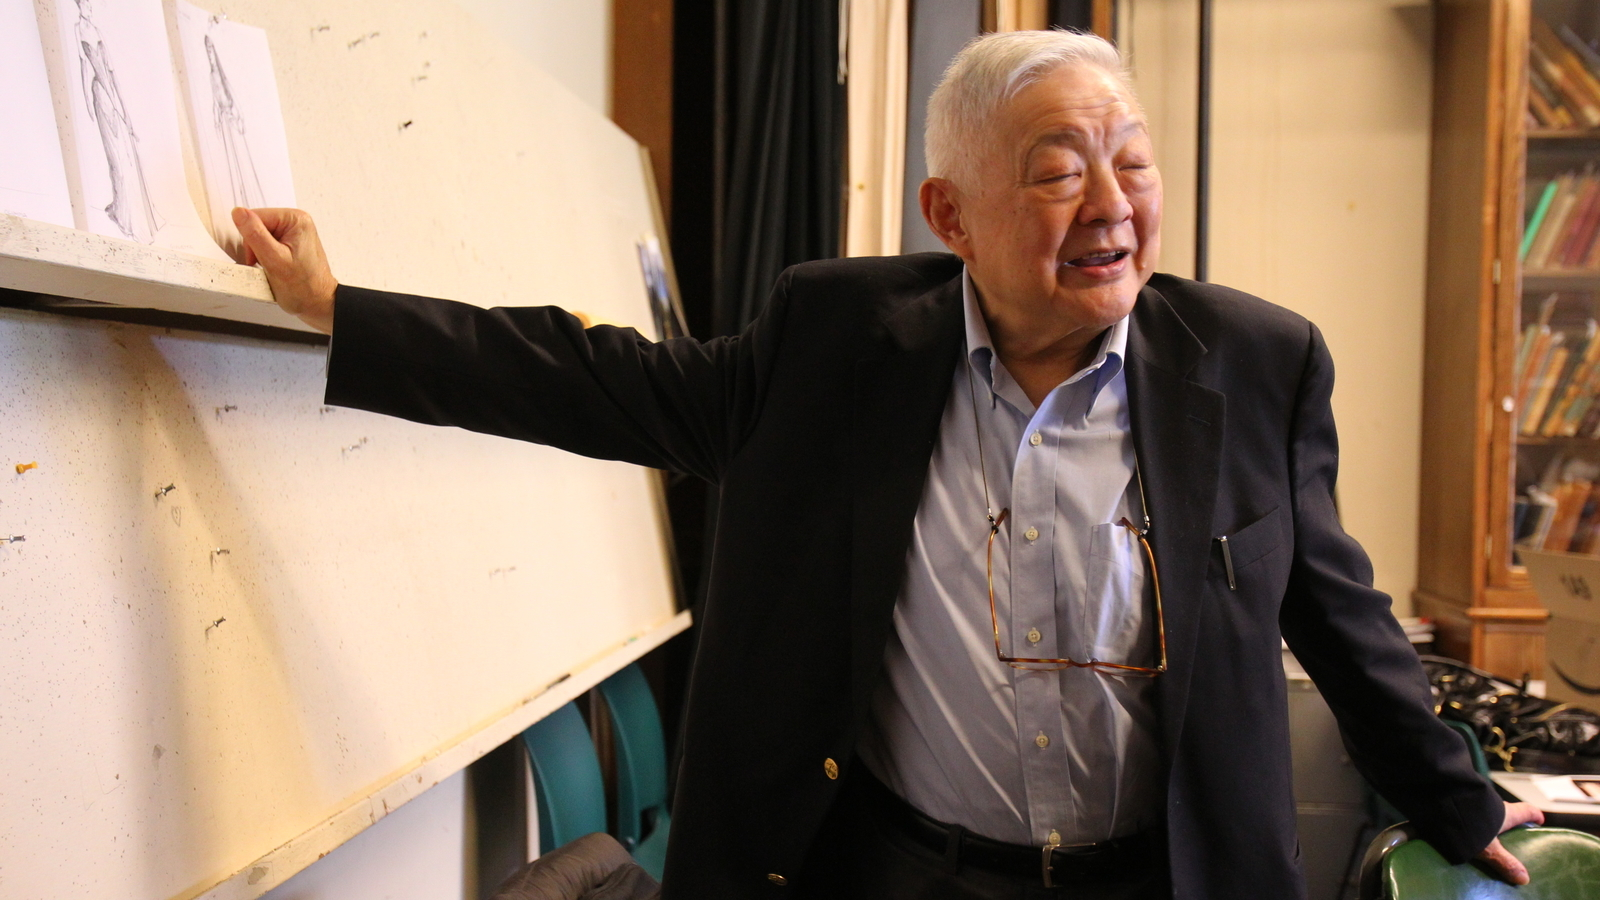 Ming Cho Lee standing